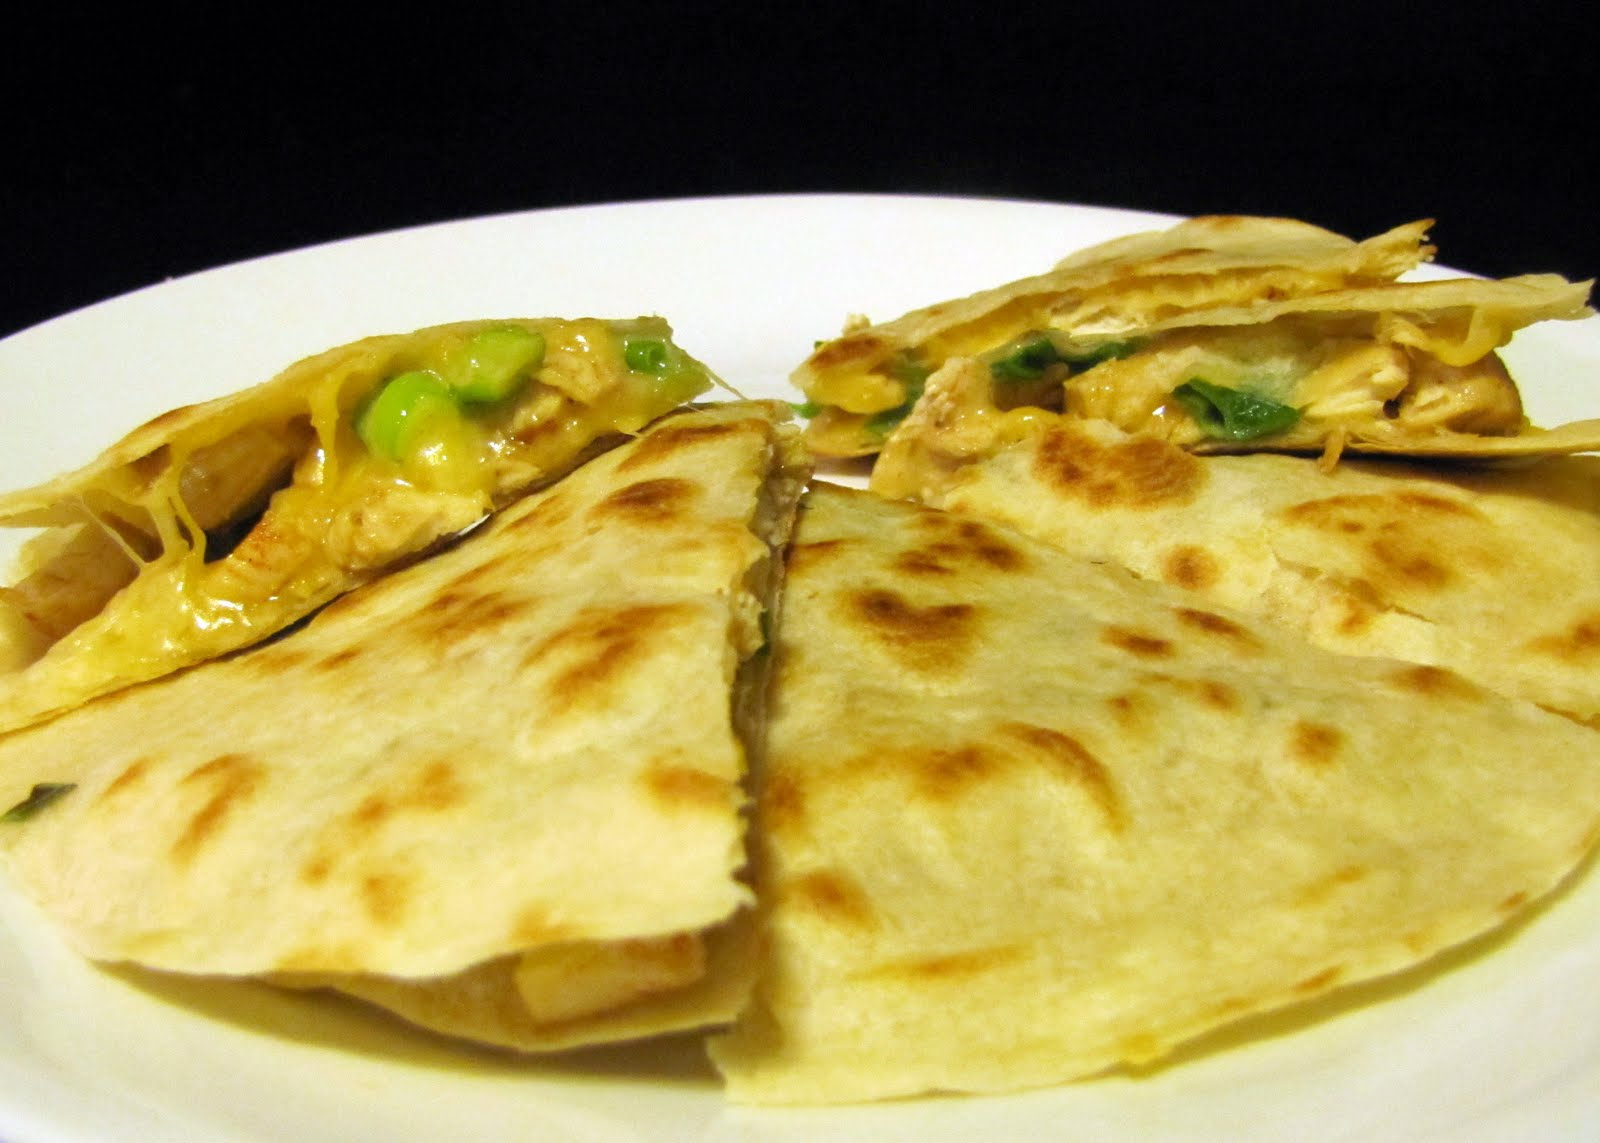 Smells Like Food in Here: Grilled Chicken Quesadilla